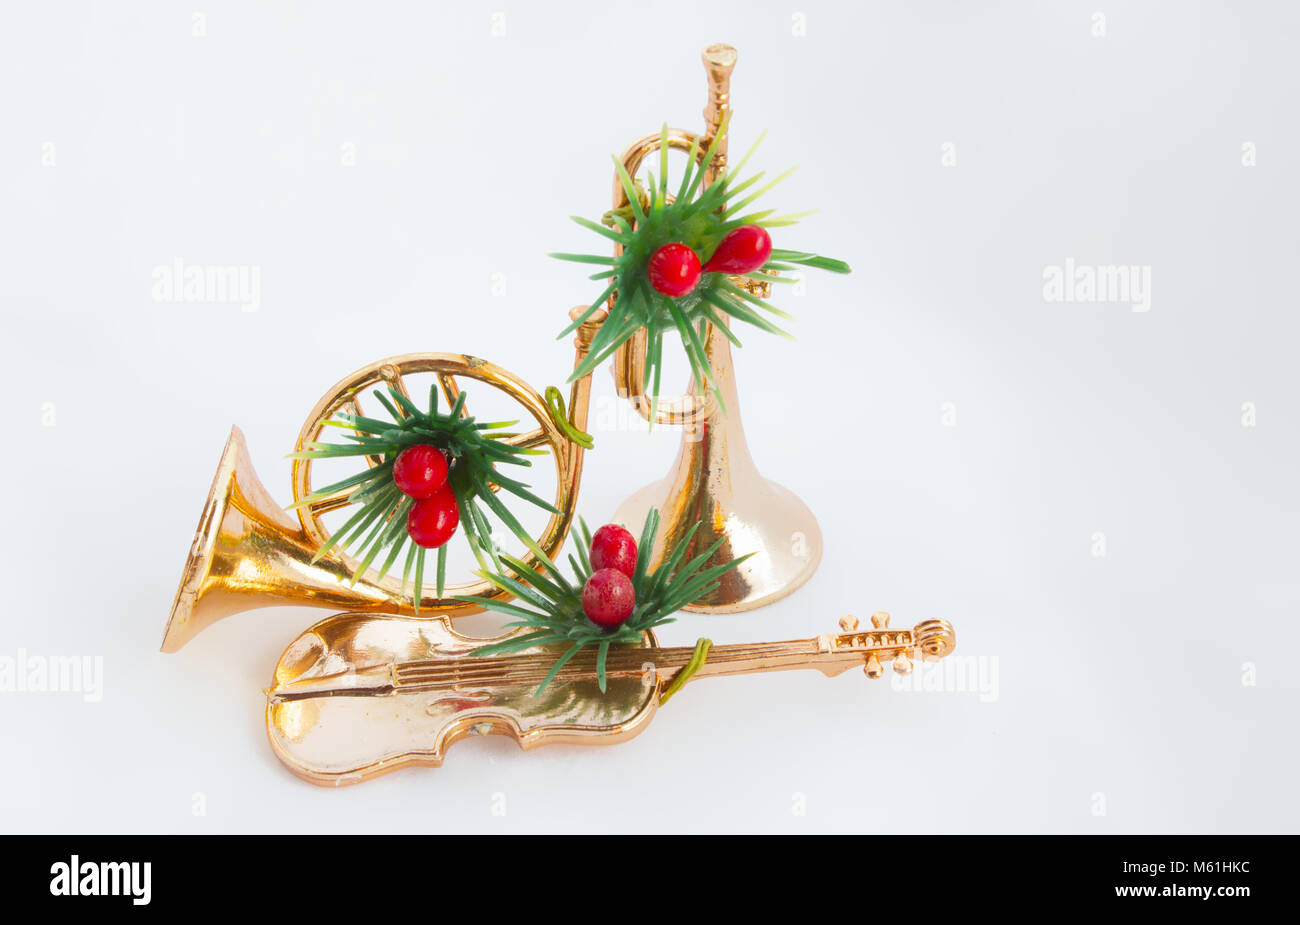 Christmas Trumpet Images.The Trumpet Horn And Violin Festively Decorated On The White